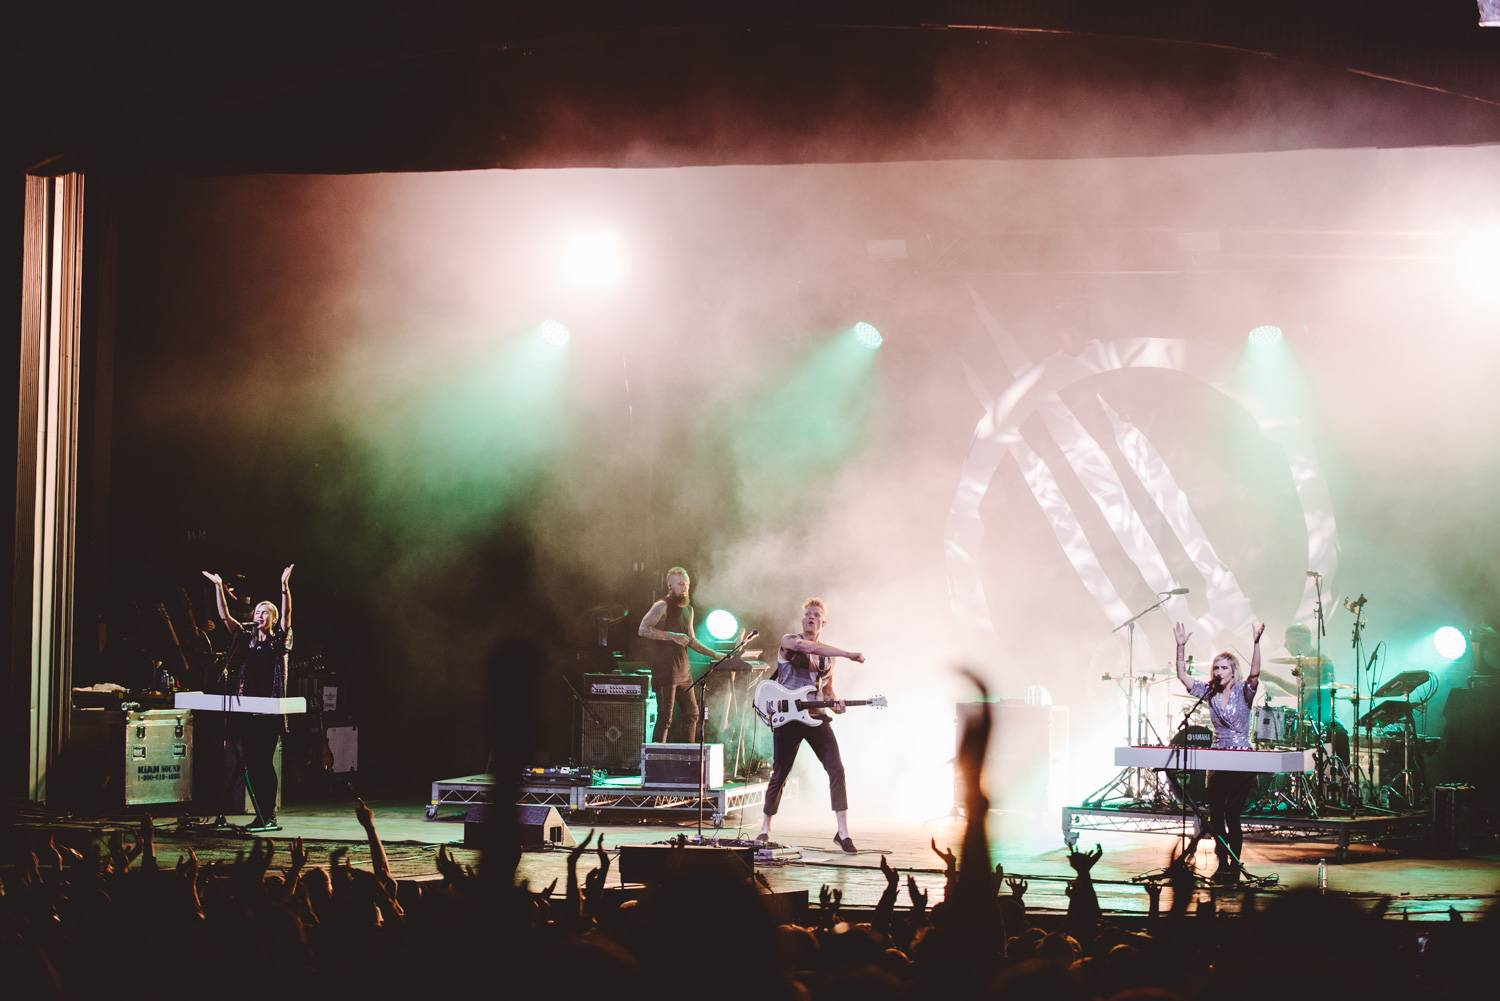 Mother Mother at the Malkin Bowl, Vancouver, Sept 21 2019. Pavel Boiko photo.